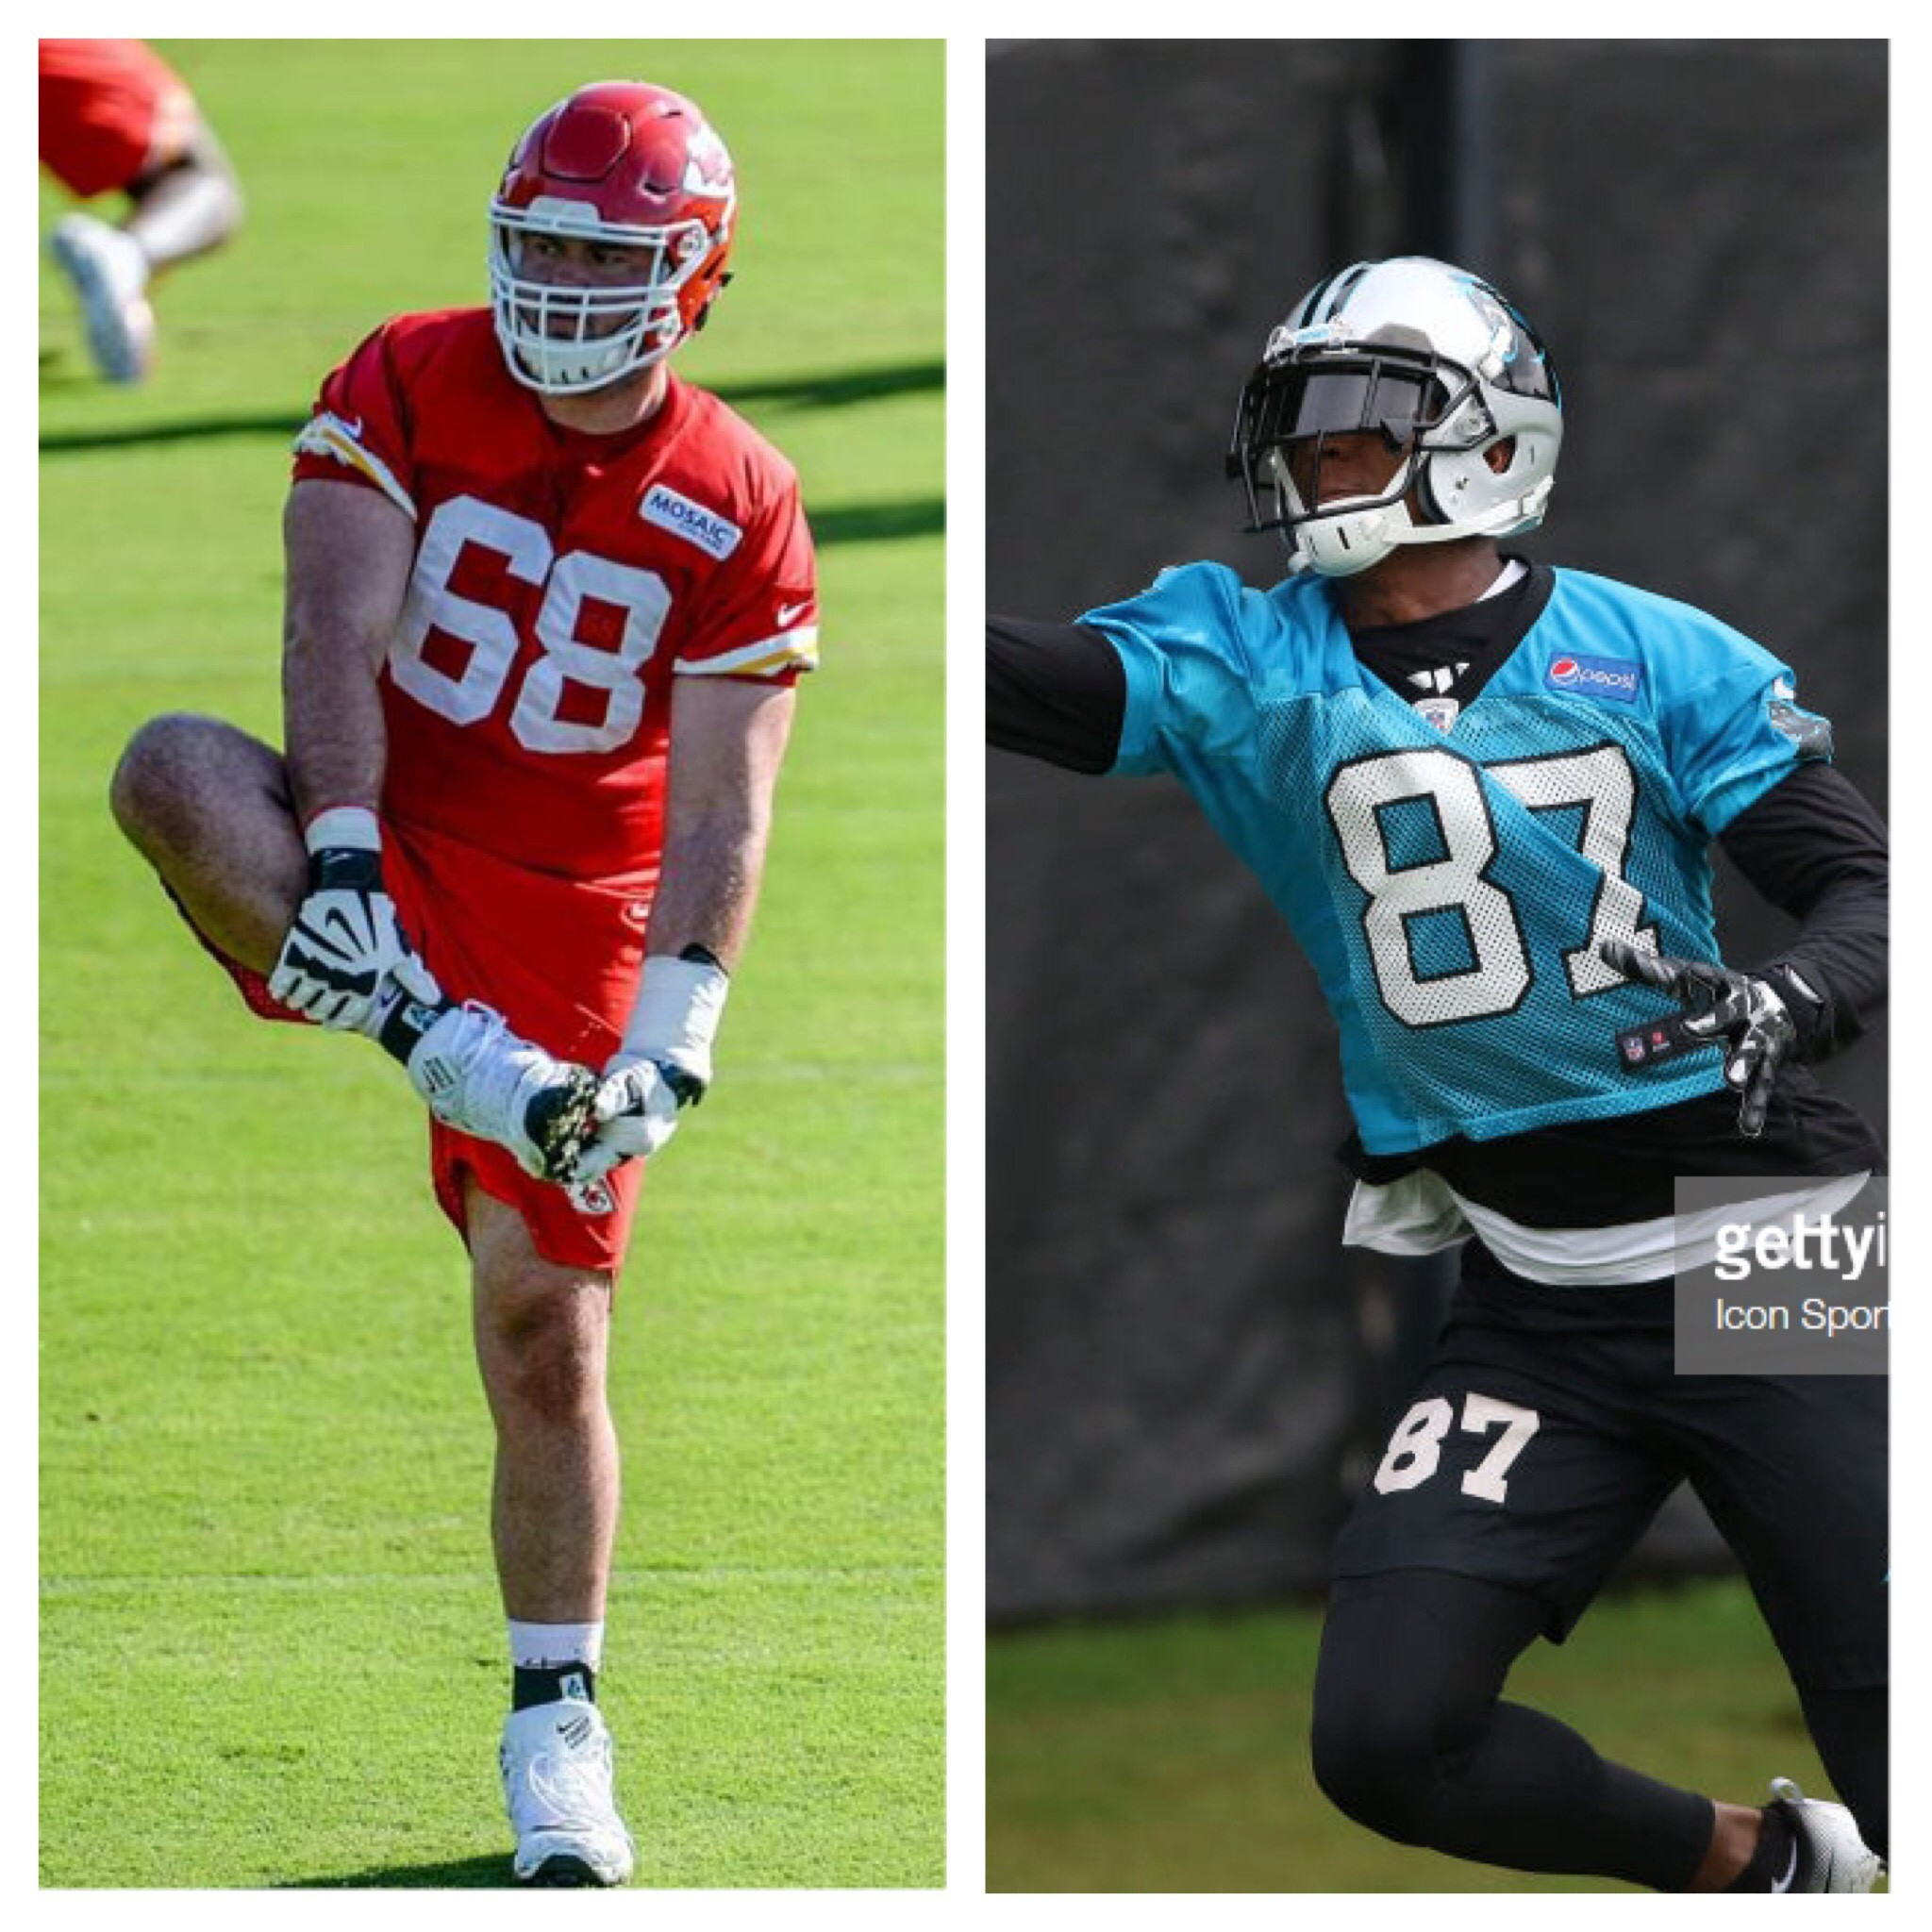 pretty nice 4c1d4 28a4f Heel Tough Blog: NFL Heels Chances to Make Roster - Heel ...